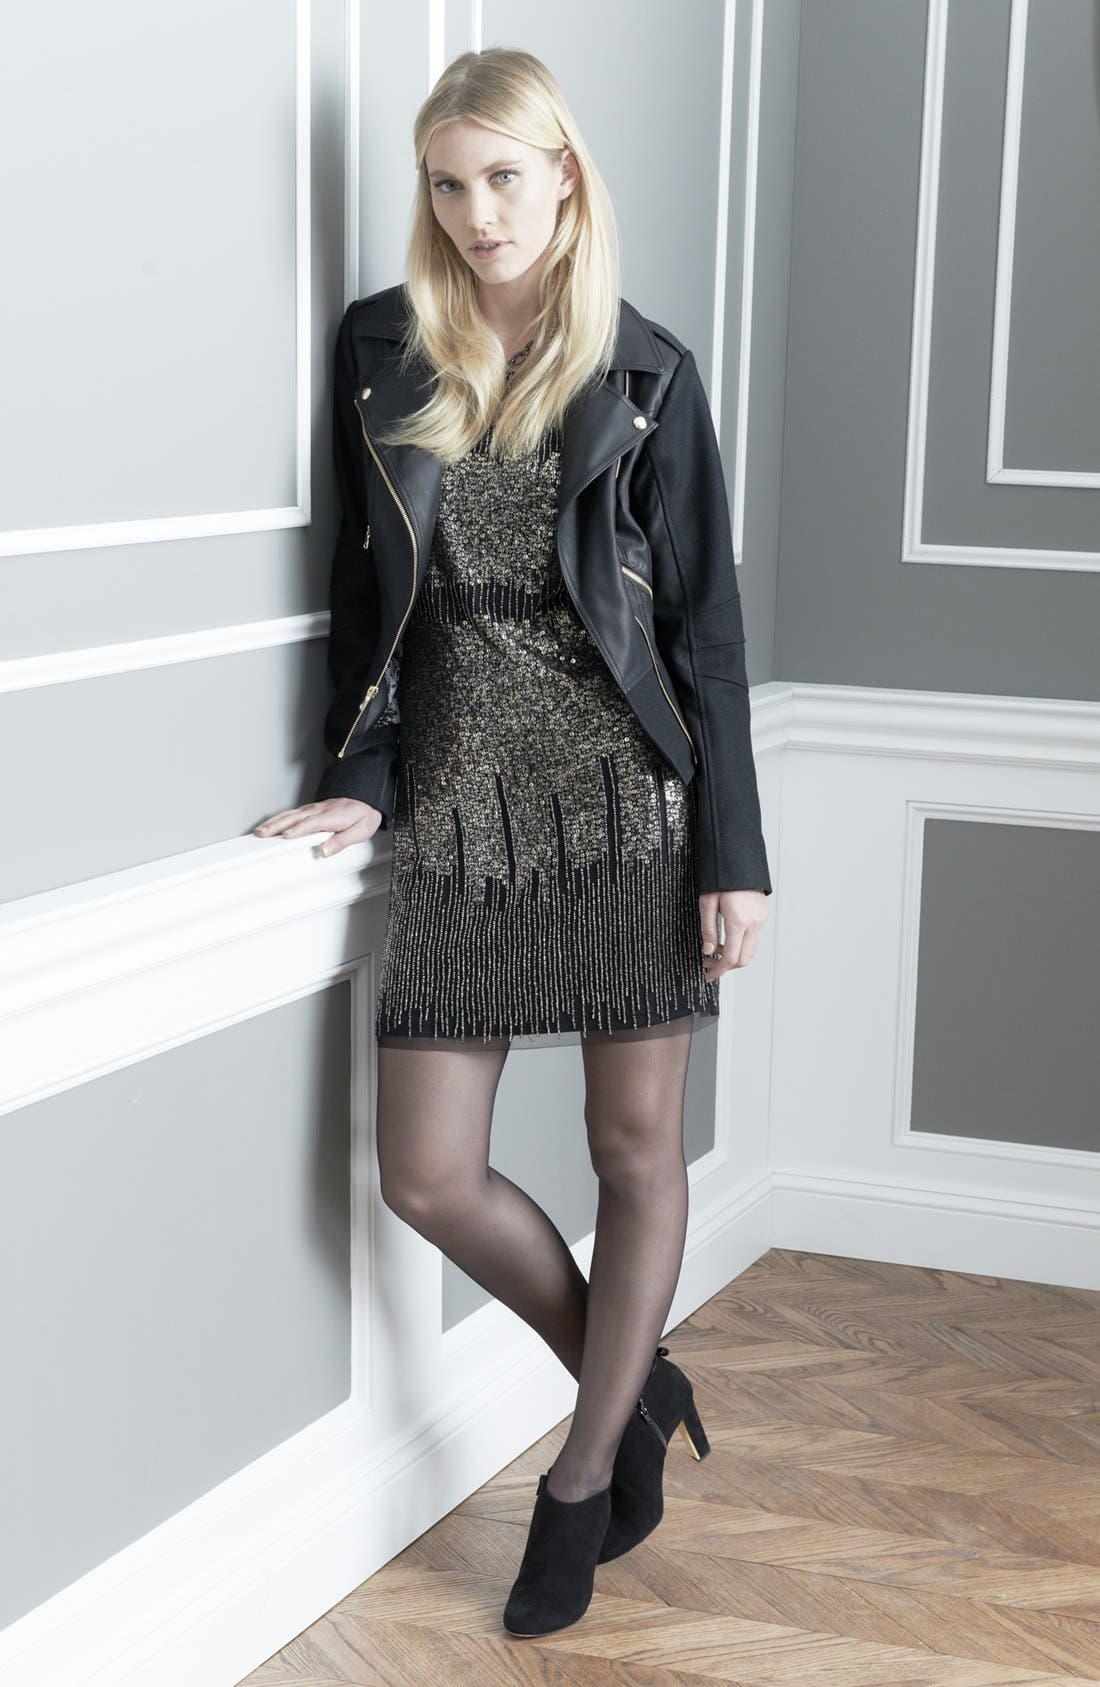 Alternate Image 1 Selected - GUESS Jacket & Adrianna Papell Dress